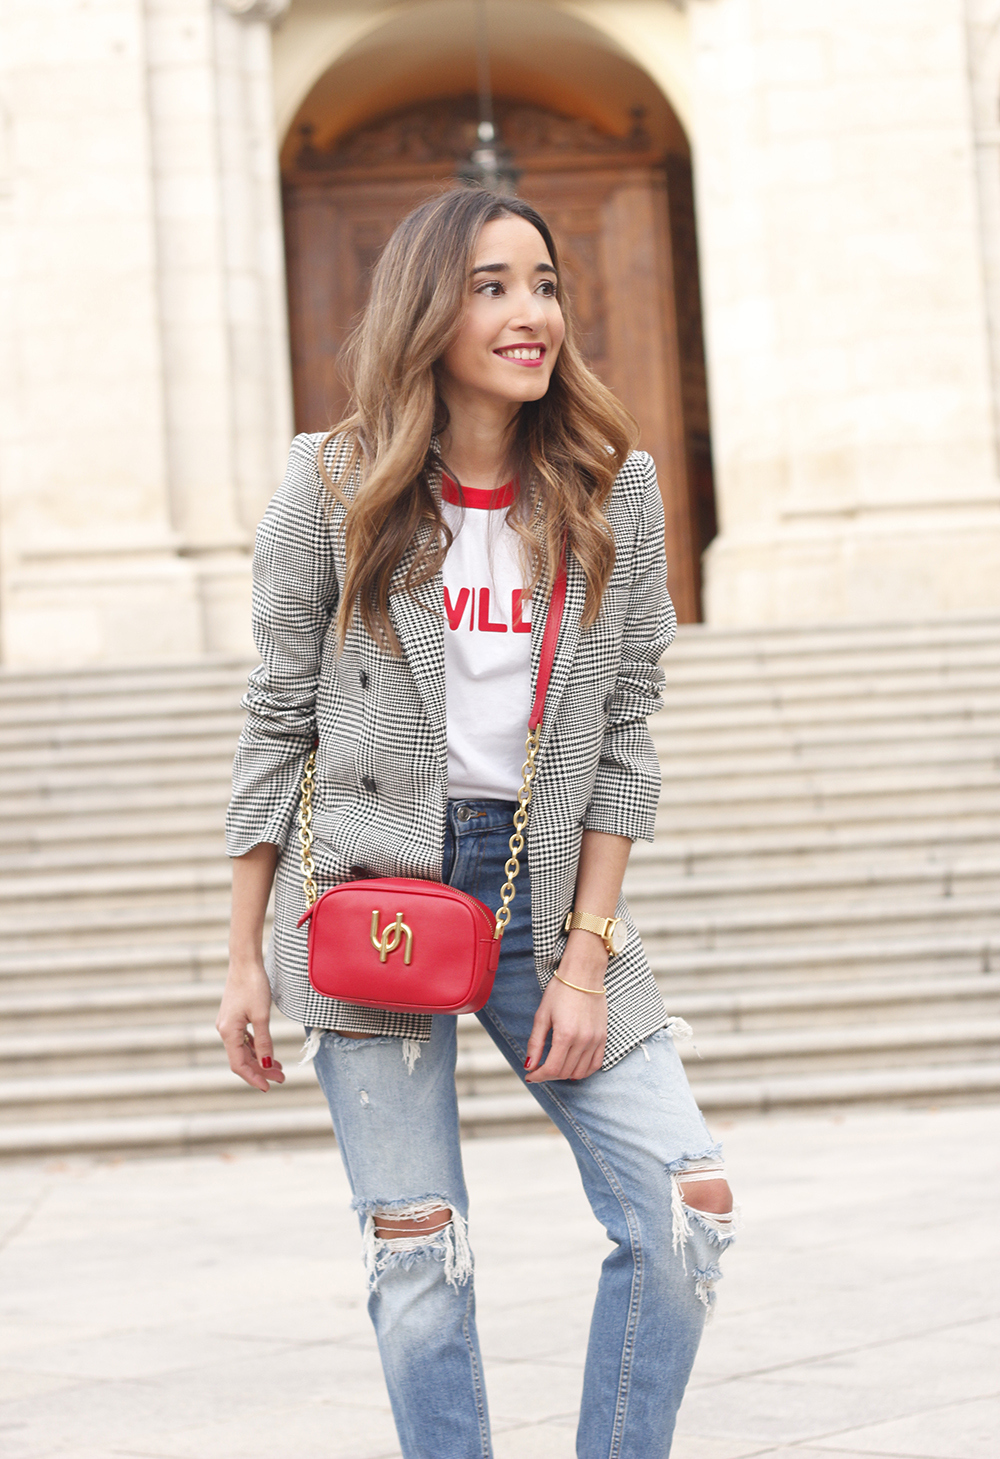 Prince of wales print blazer ripped jeans red heels uterqüe style trend fall outfit07